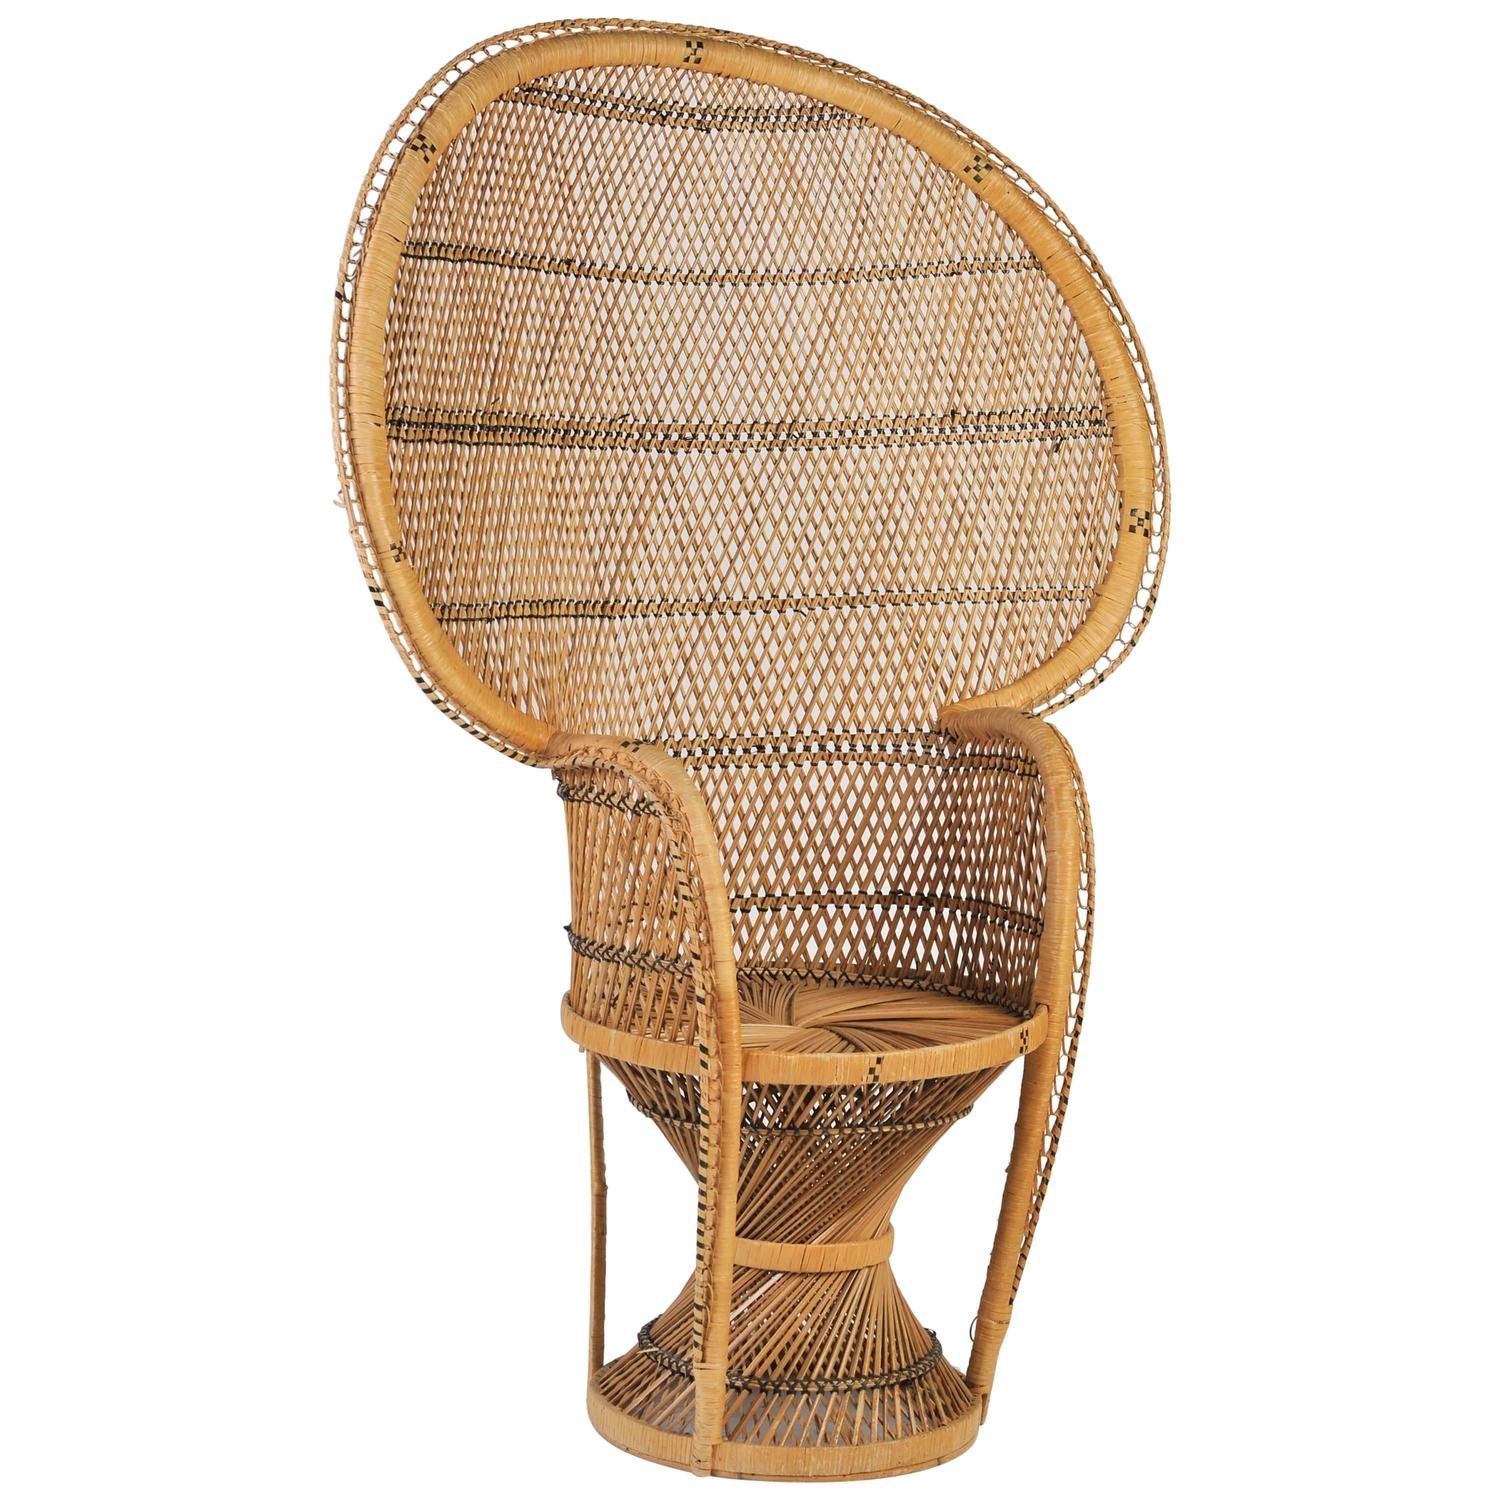 rattan peacock chair grey slipcover emmanuel or 39peacock 39 circa 1970s for sale at 1stdibs